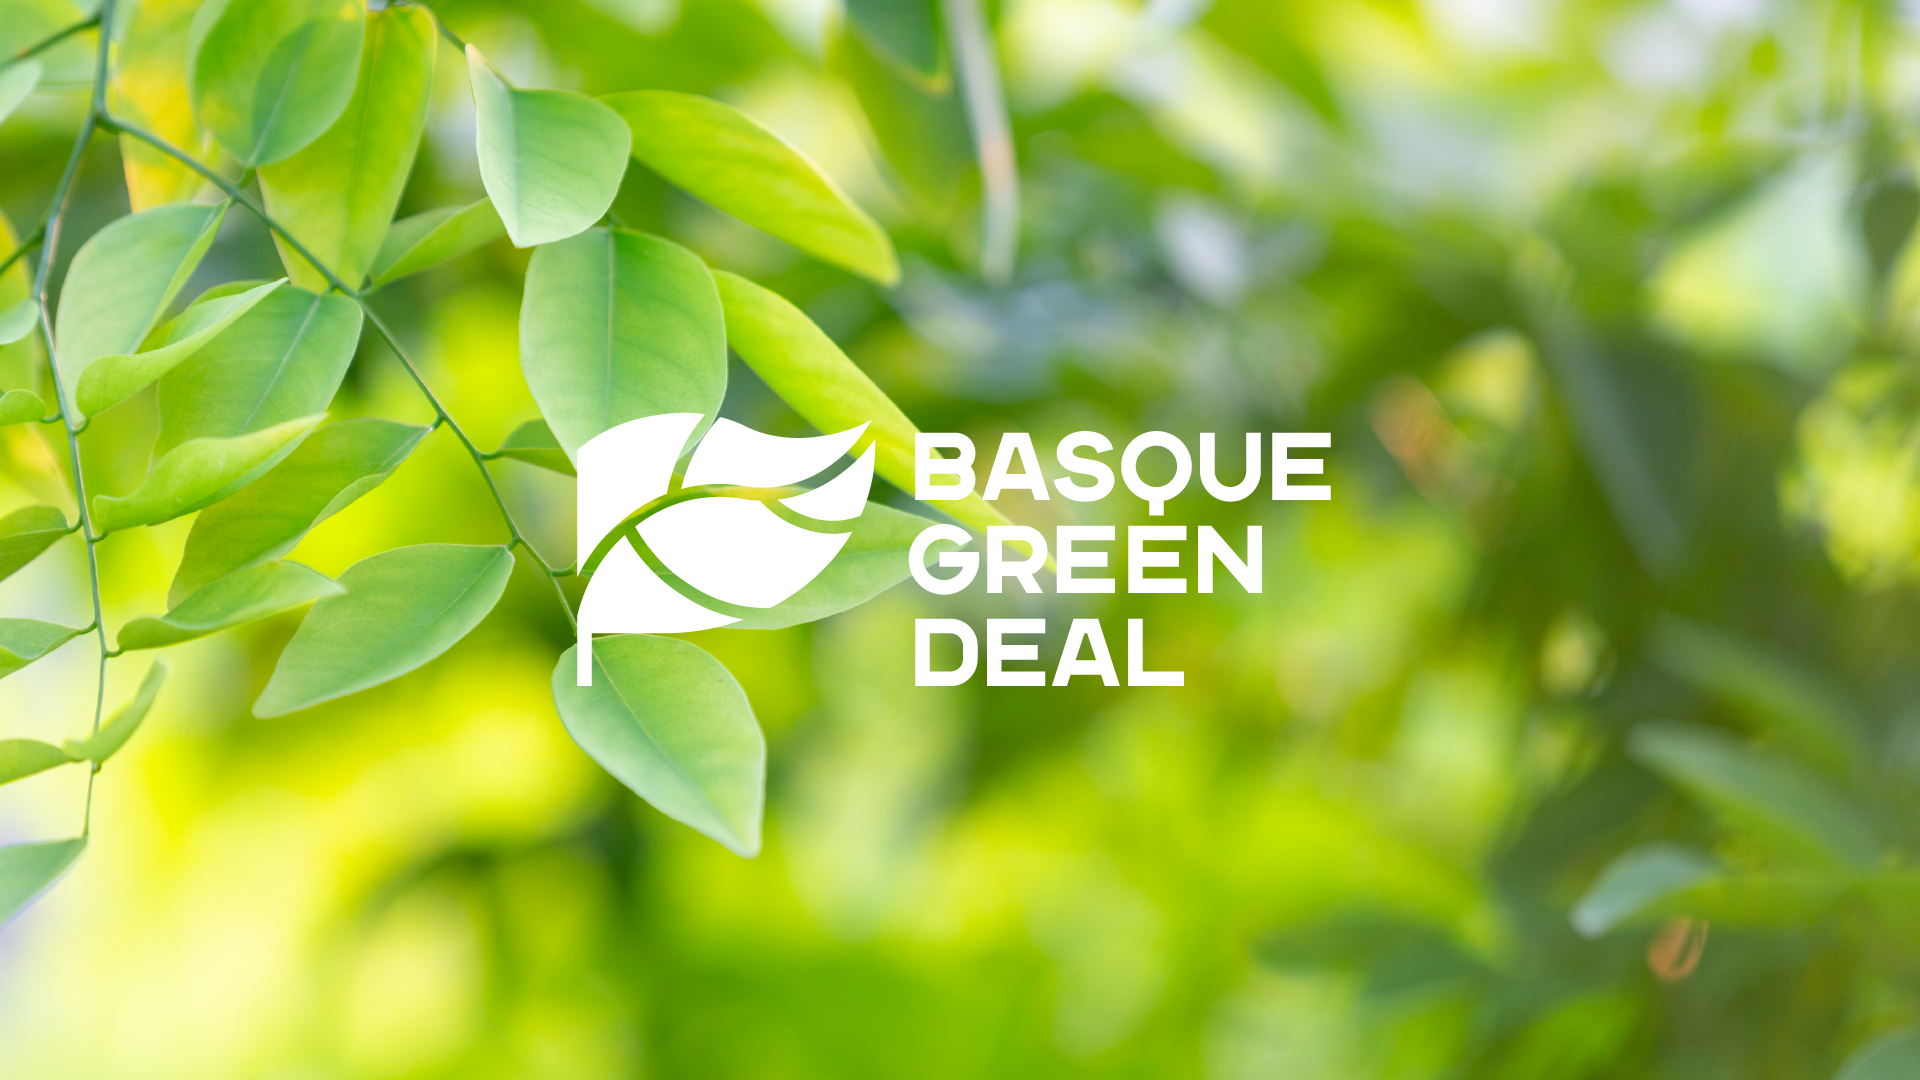 Basque_Green_Deal_15R.png